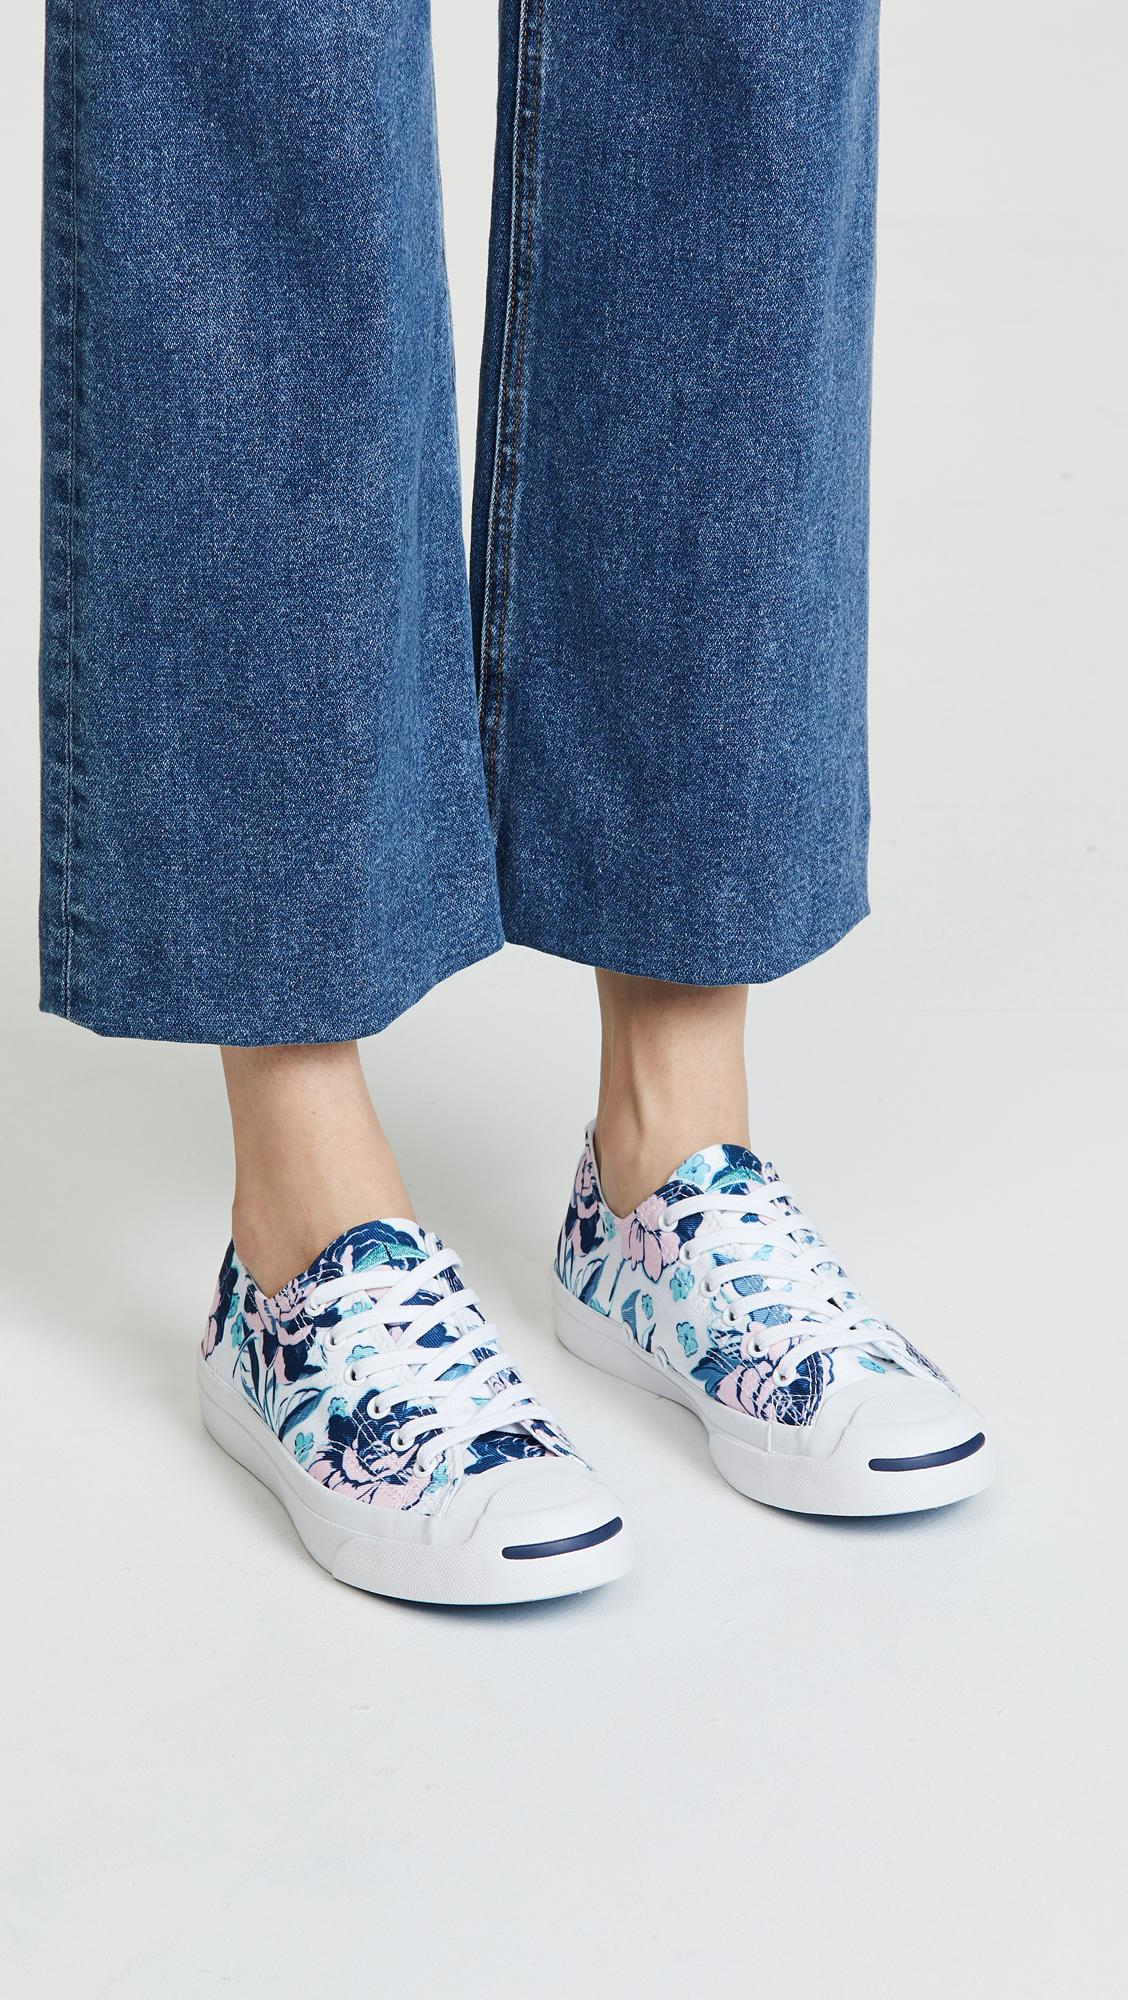 Converse Canvas Jack Purcell Floral Print Sneakers in White/Cherry Blossom (Blue)